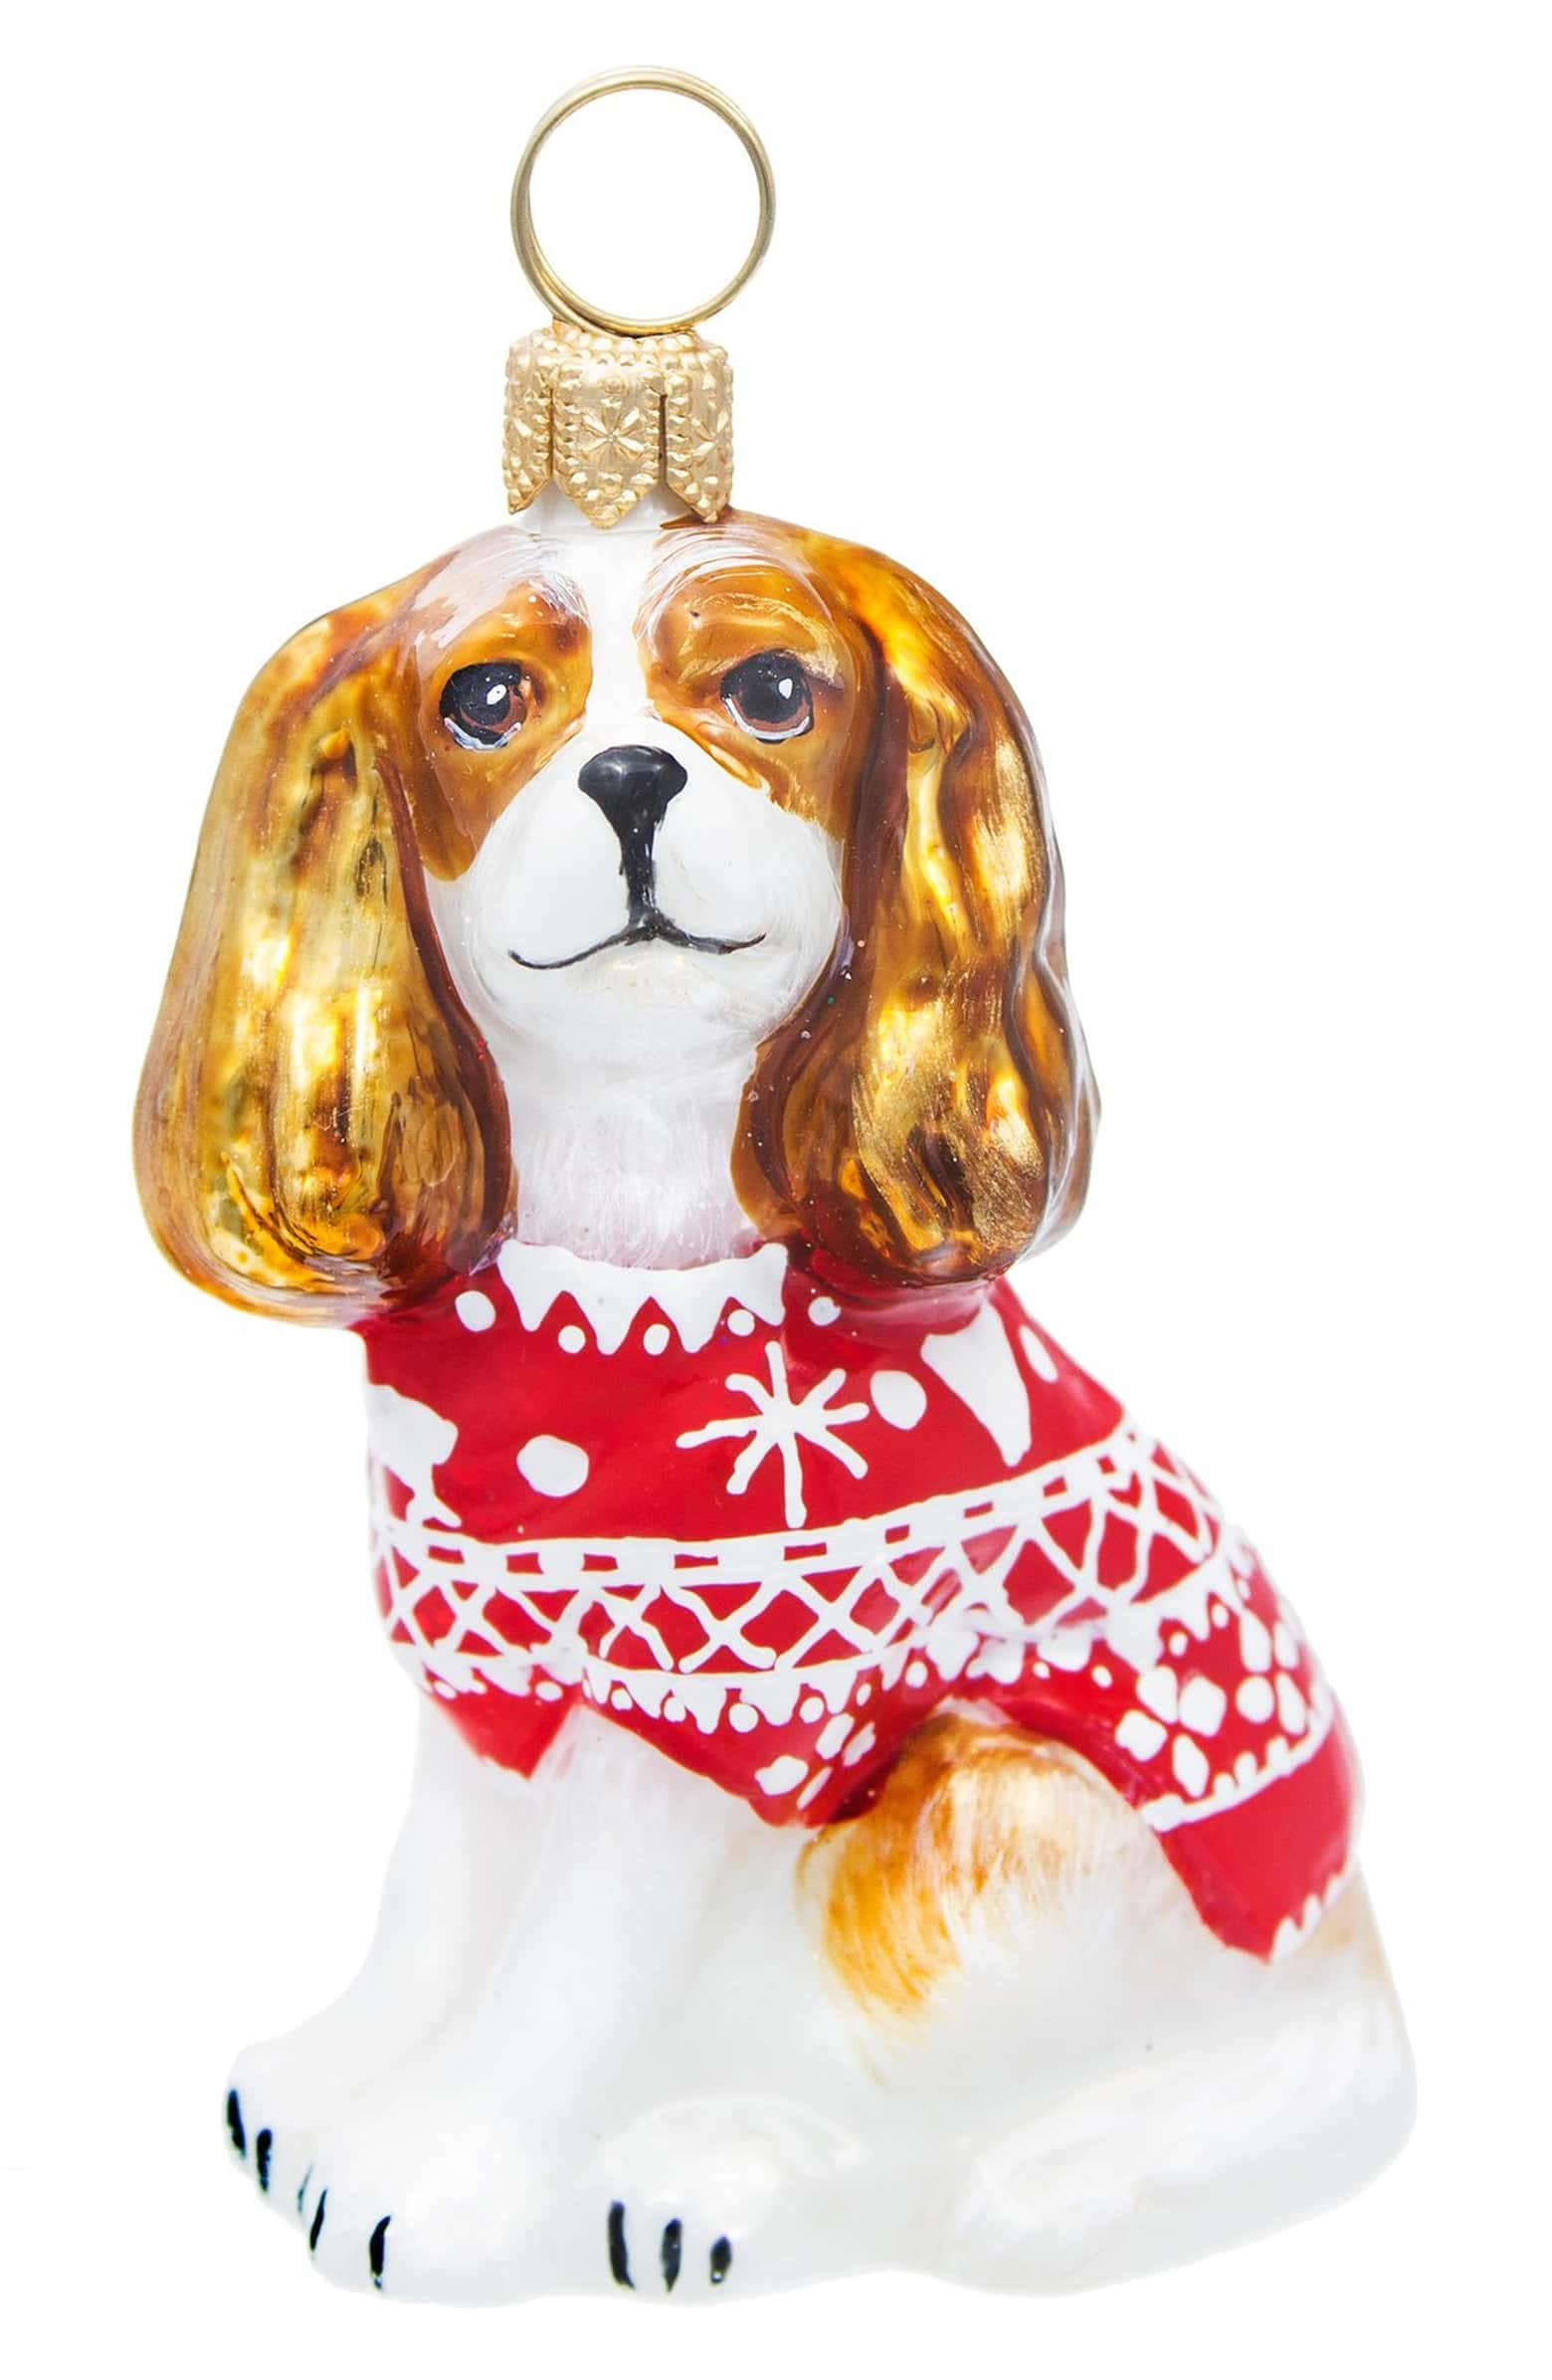 Spaniel Dog Ornament